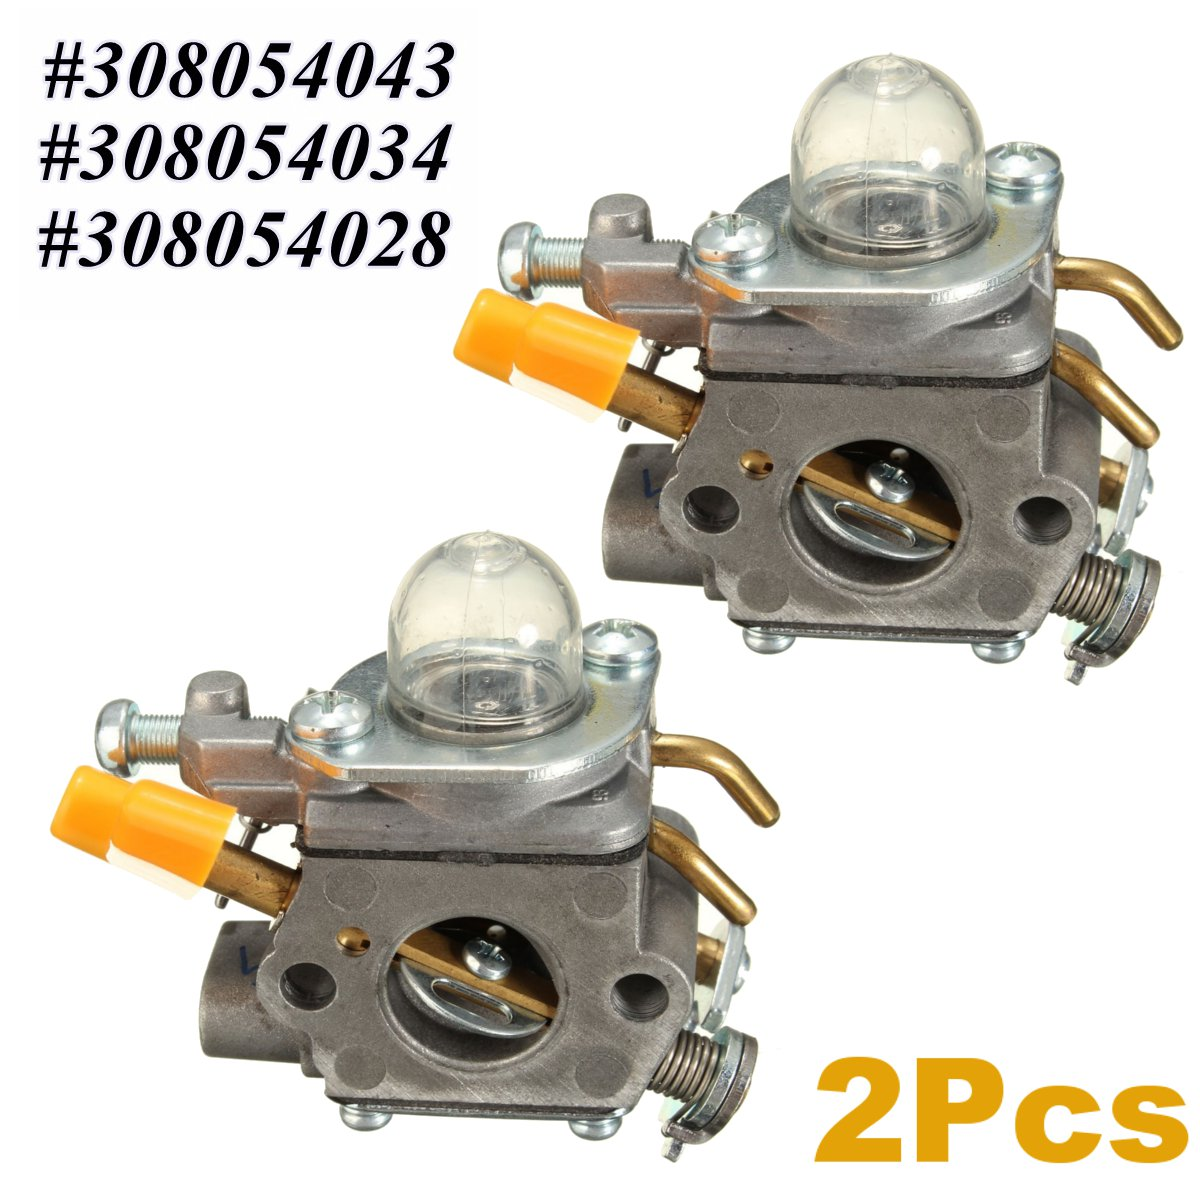 best top carburetor 6 list and get free shipping - cm982l7h